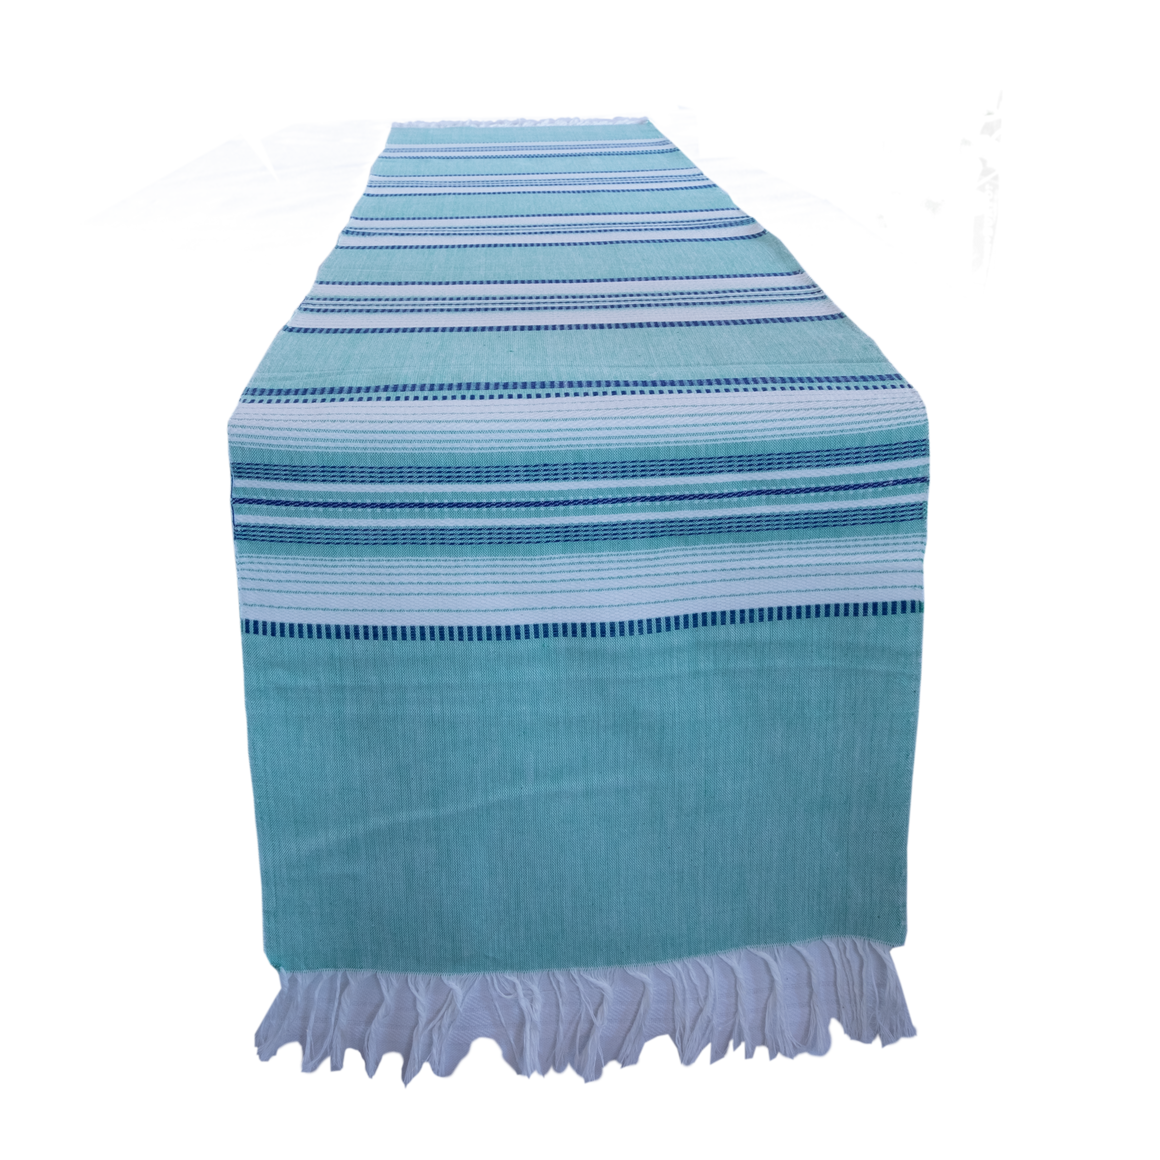 Teal runner with blue stripes